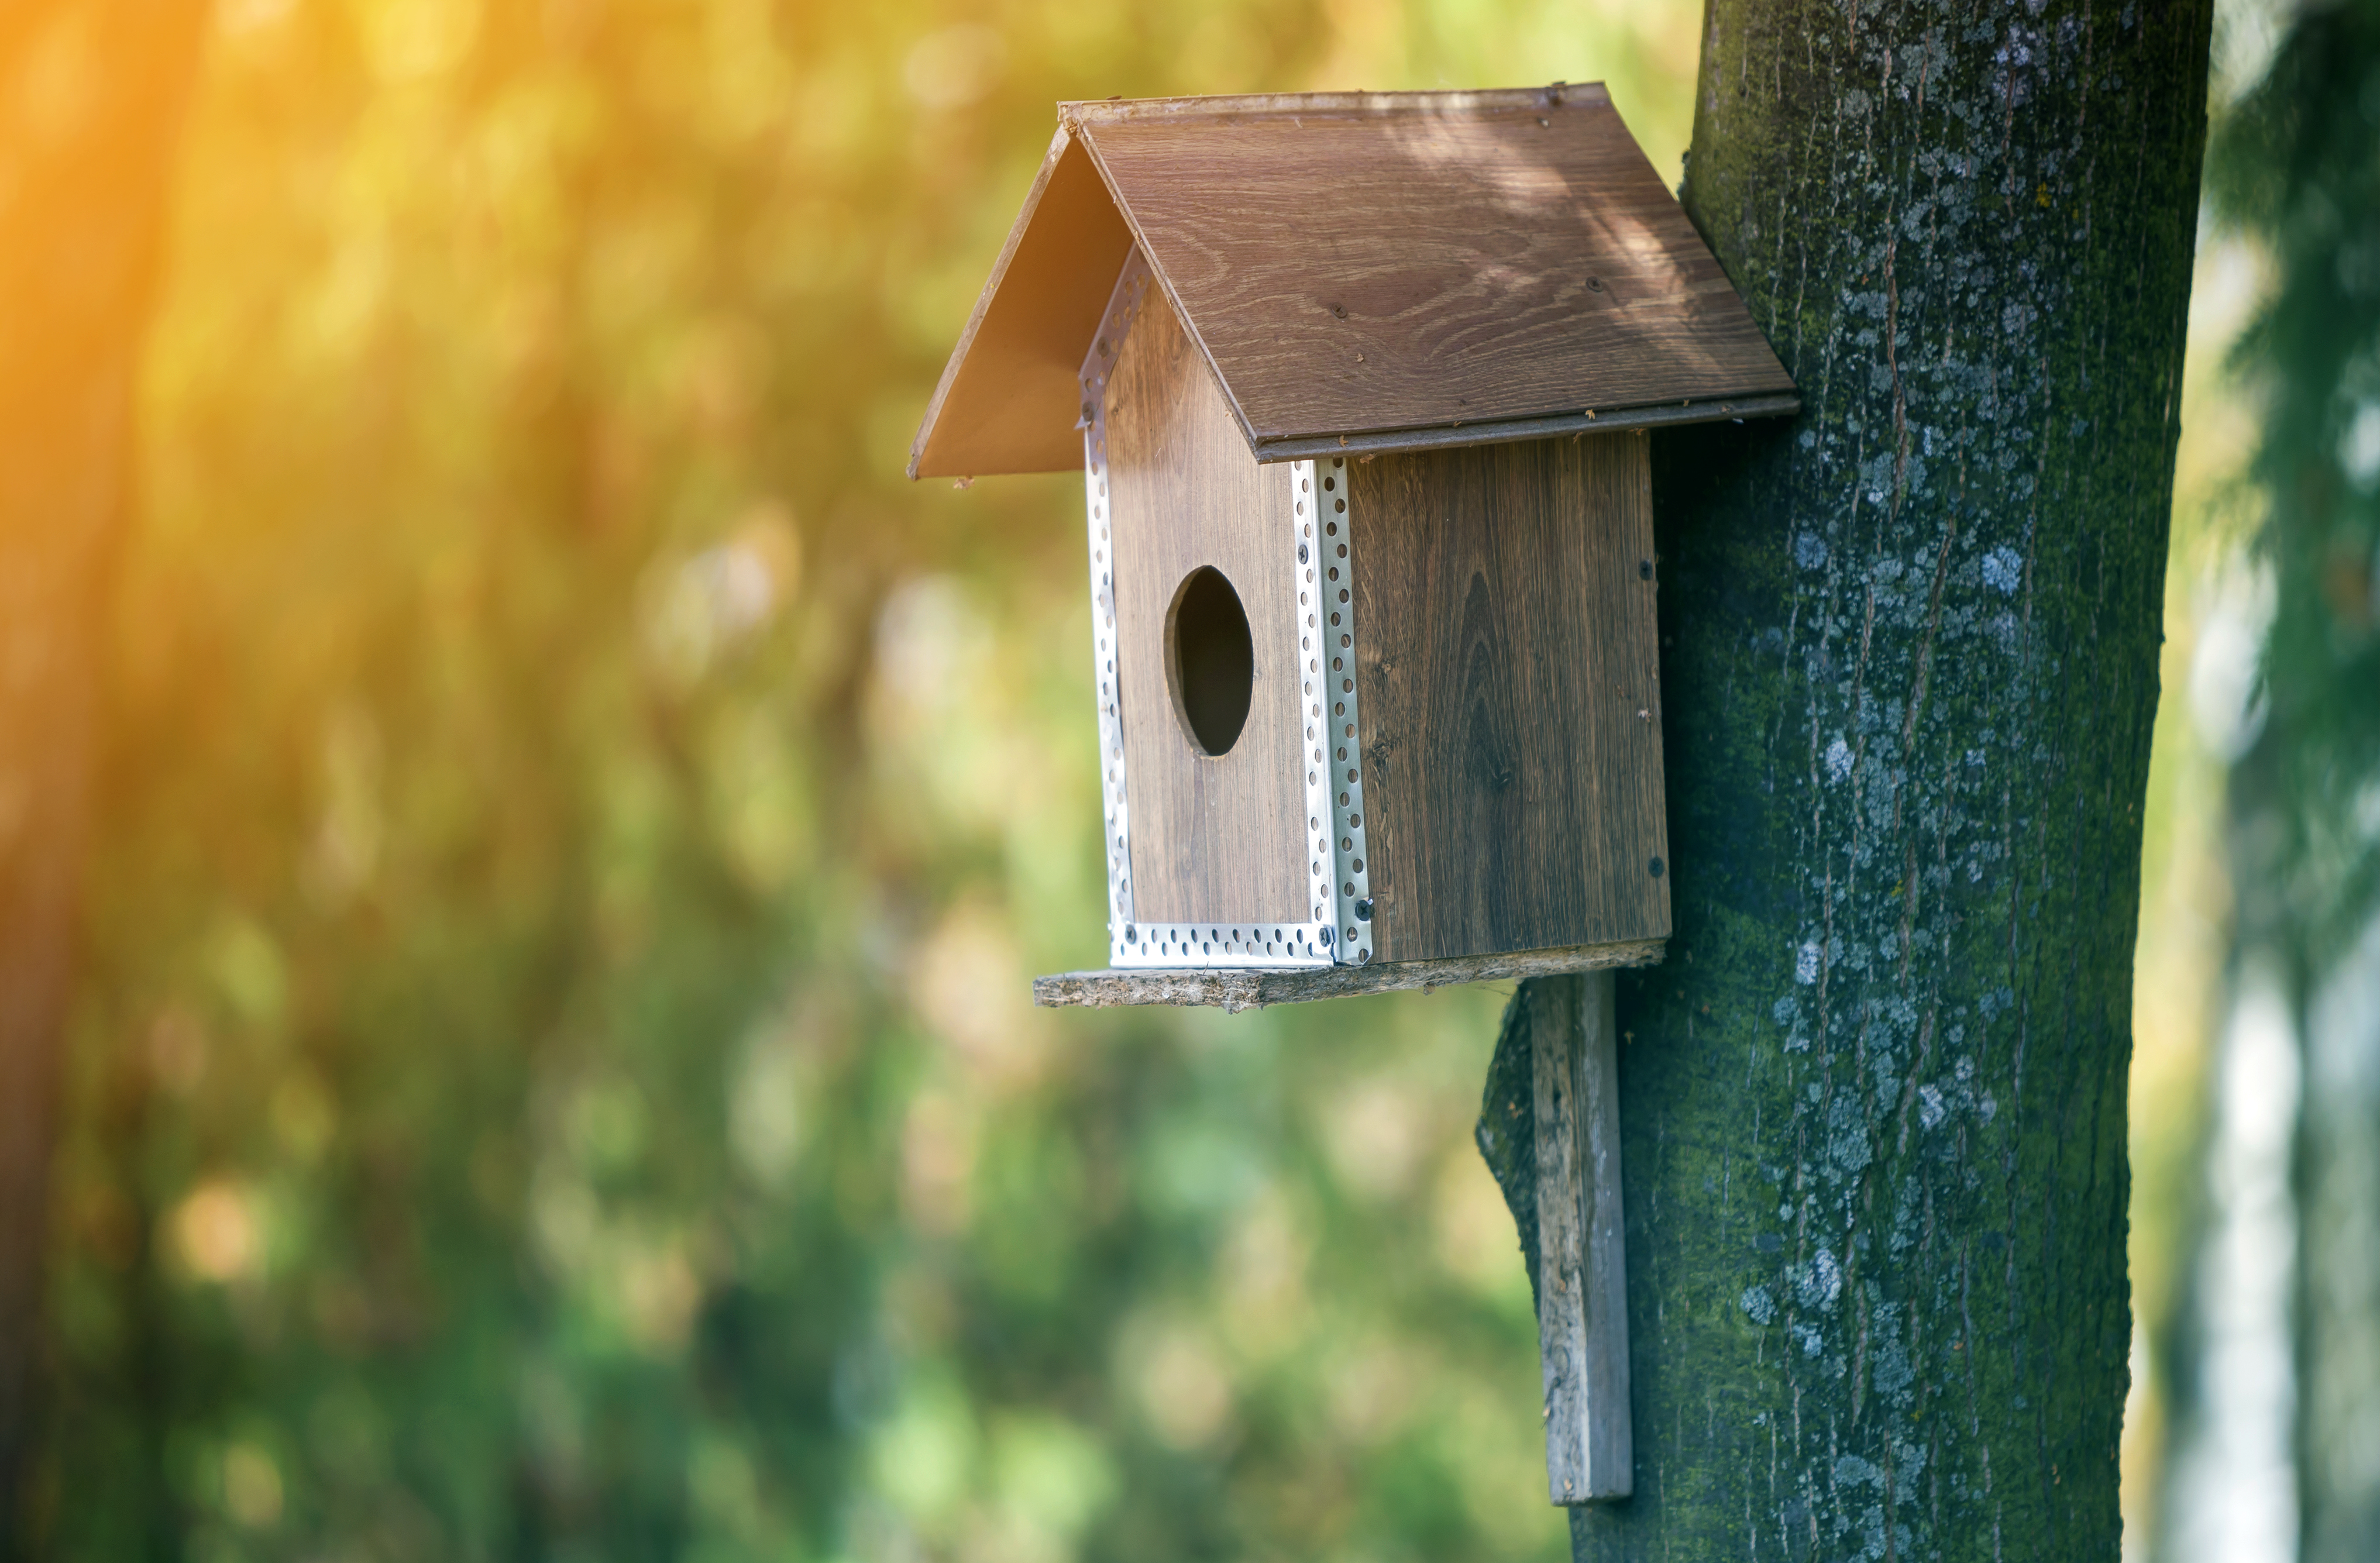 Brilliant How To Attach A Birdhouse To A Tree Without Damage Home Download Free Architecture Designs Scobabritishbridgeorg